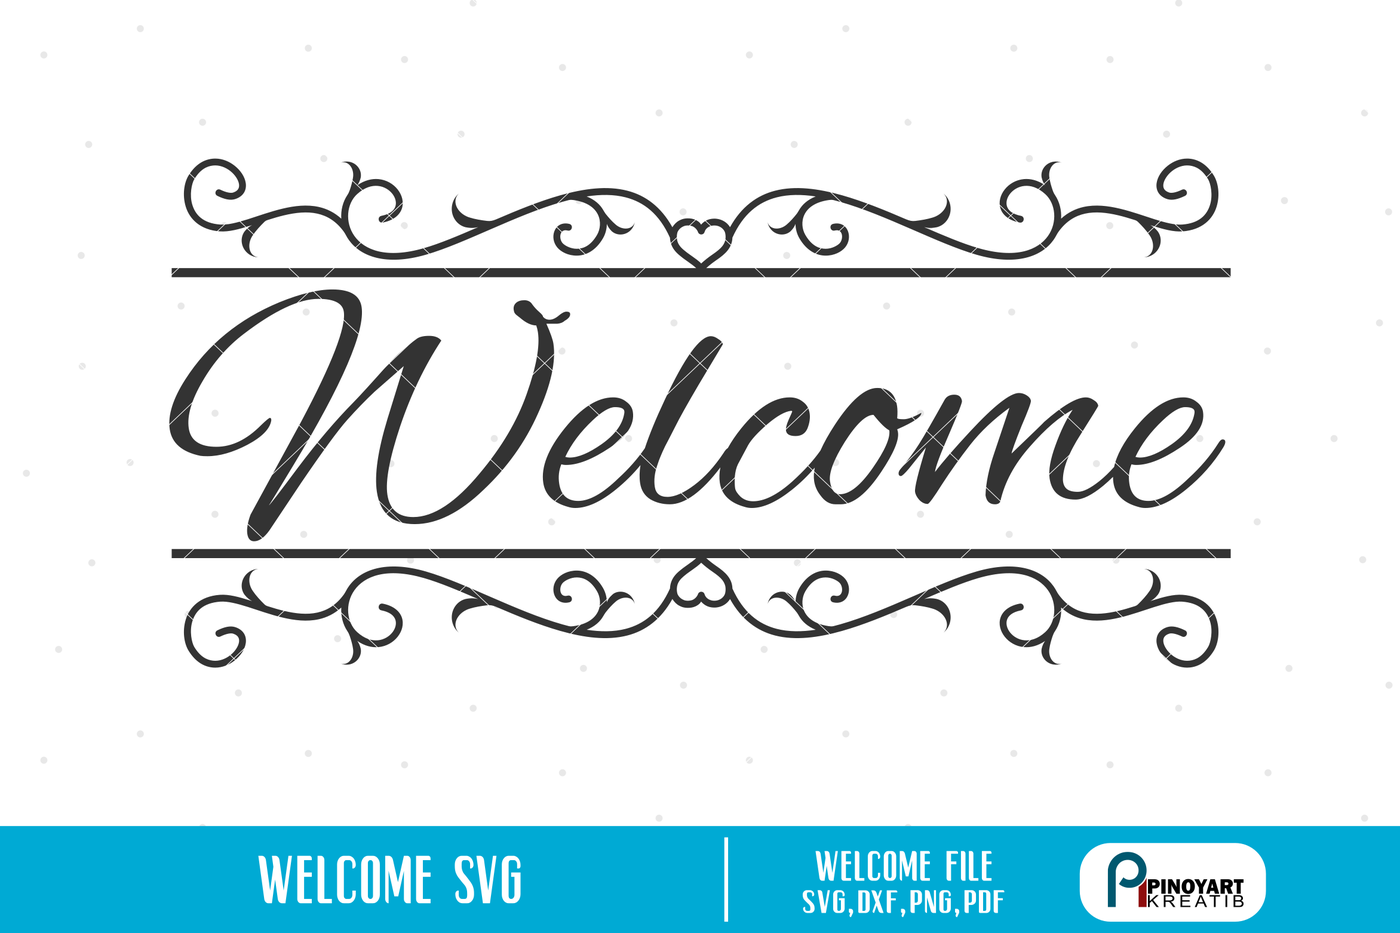 Welcome Svg Welcome Greeting Svg Greeting Svg Svg Files For